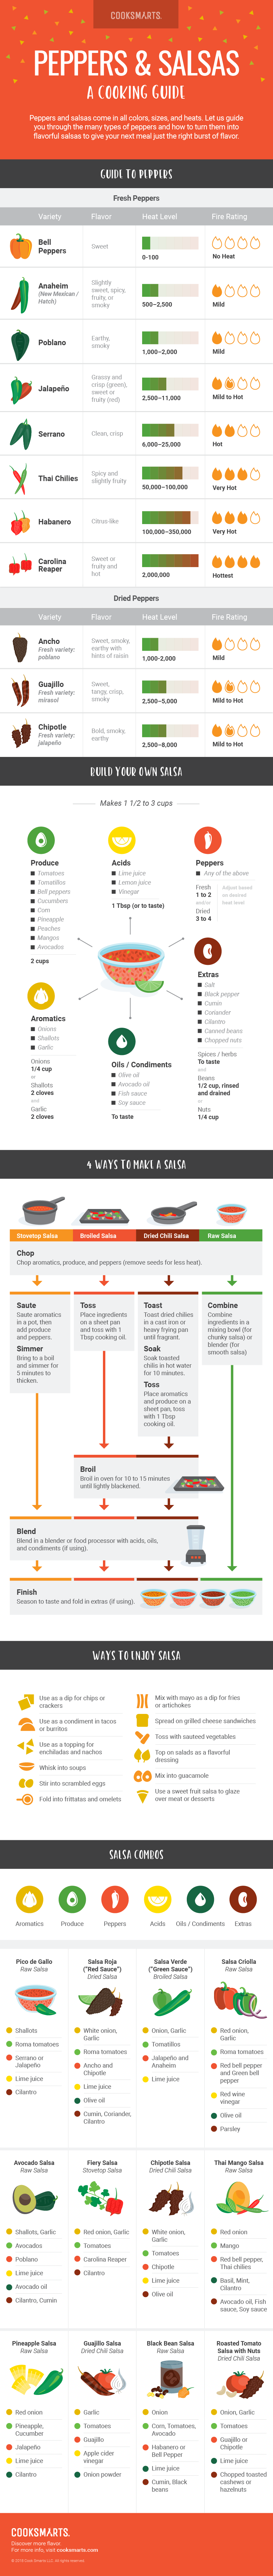 Guide to Peppers and Salsas [Infographic] | Cook Smarts